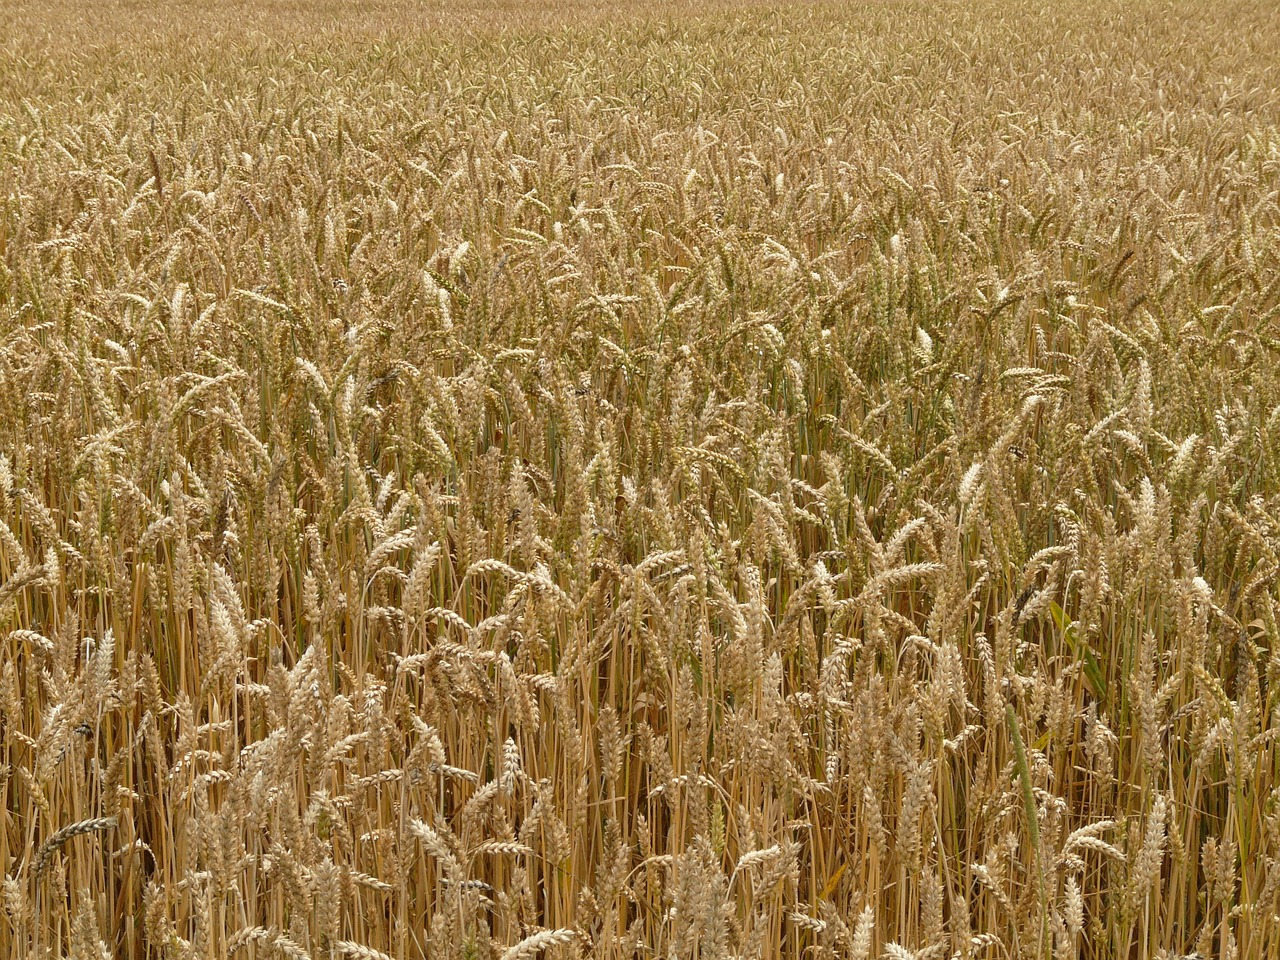 spike,wheat,cereals,grain,field,wheat field,cornfield,plant,eat,food,arable,free pictures, free photos, free images, royalty free, free illustrations, public domain